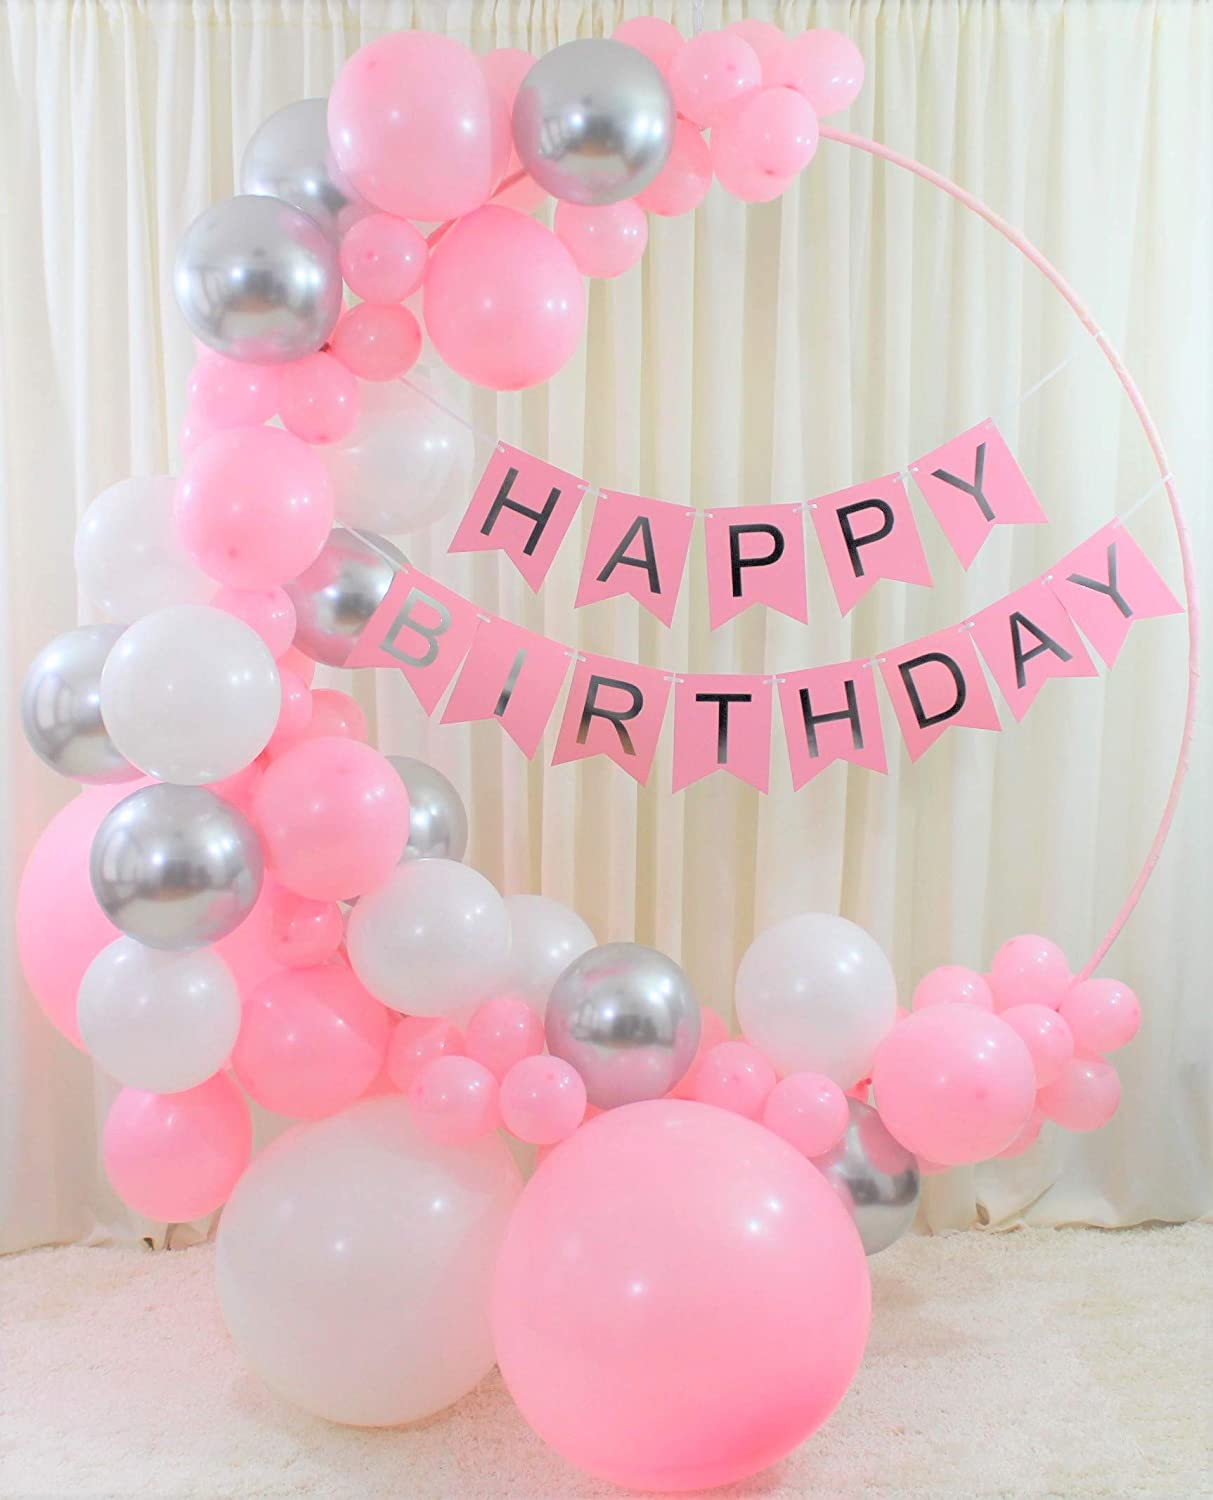 Qutechat Happy Birthday Decorations for Women and Girls - 8 Pink, White,  and Silver Balloons - Lovely Banner with White Ribbon - DIY Tool Kit for